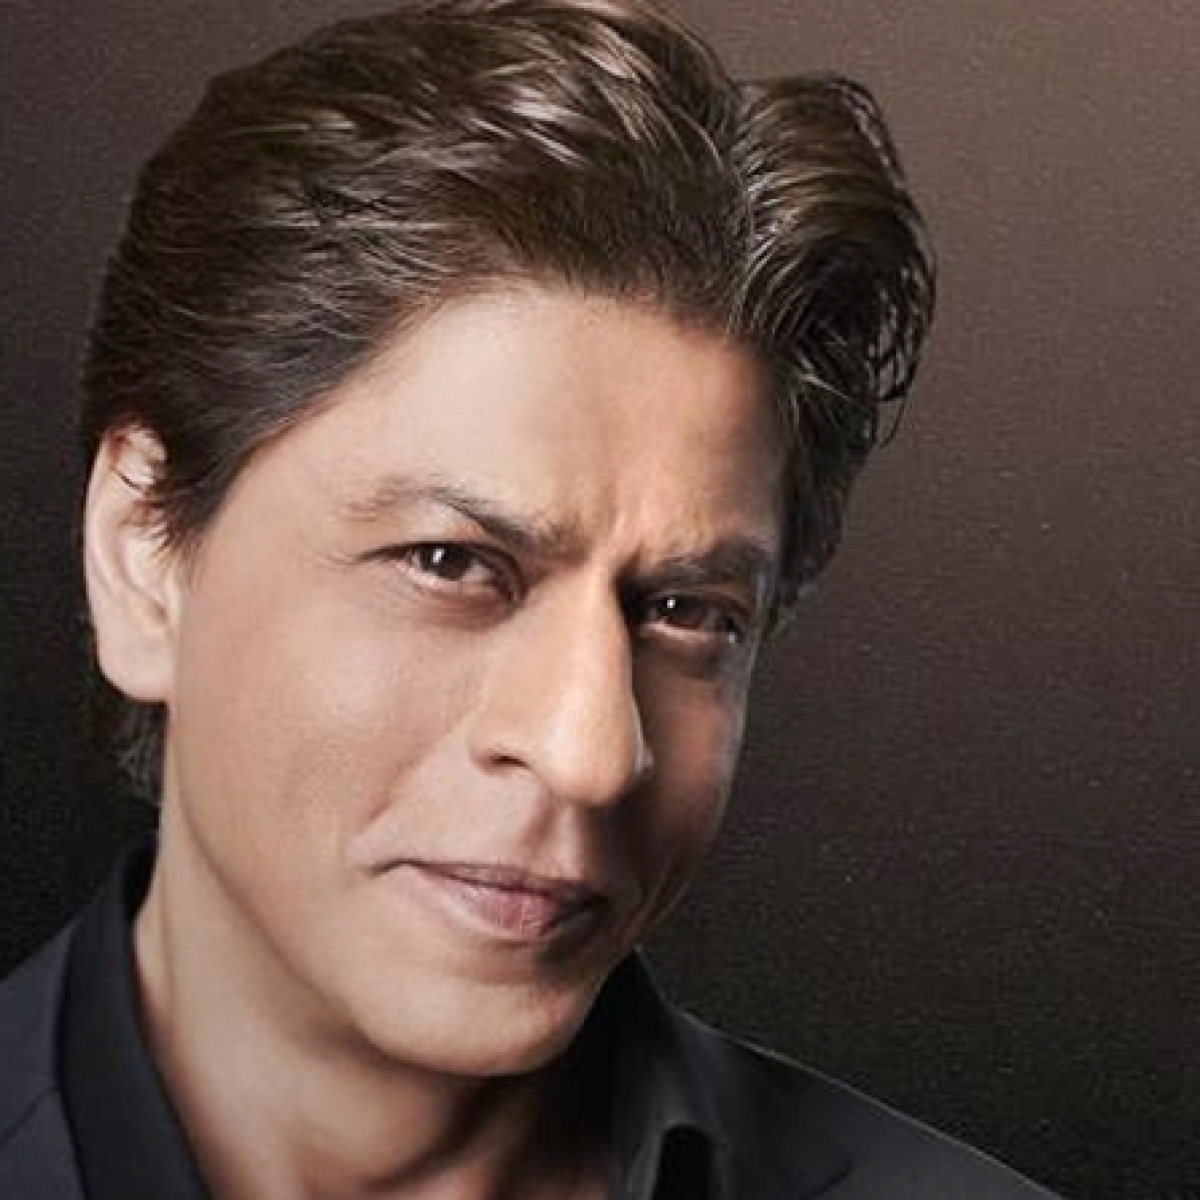 In a first, YRF directed to pay Rs 10K to consumer who felt deceived due to exclusion of song from Shah Rukh Khan's 'Fan'